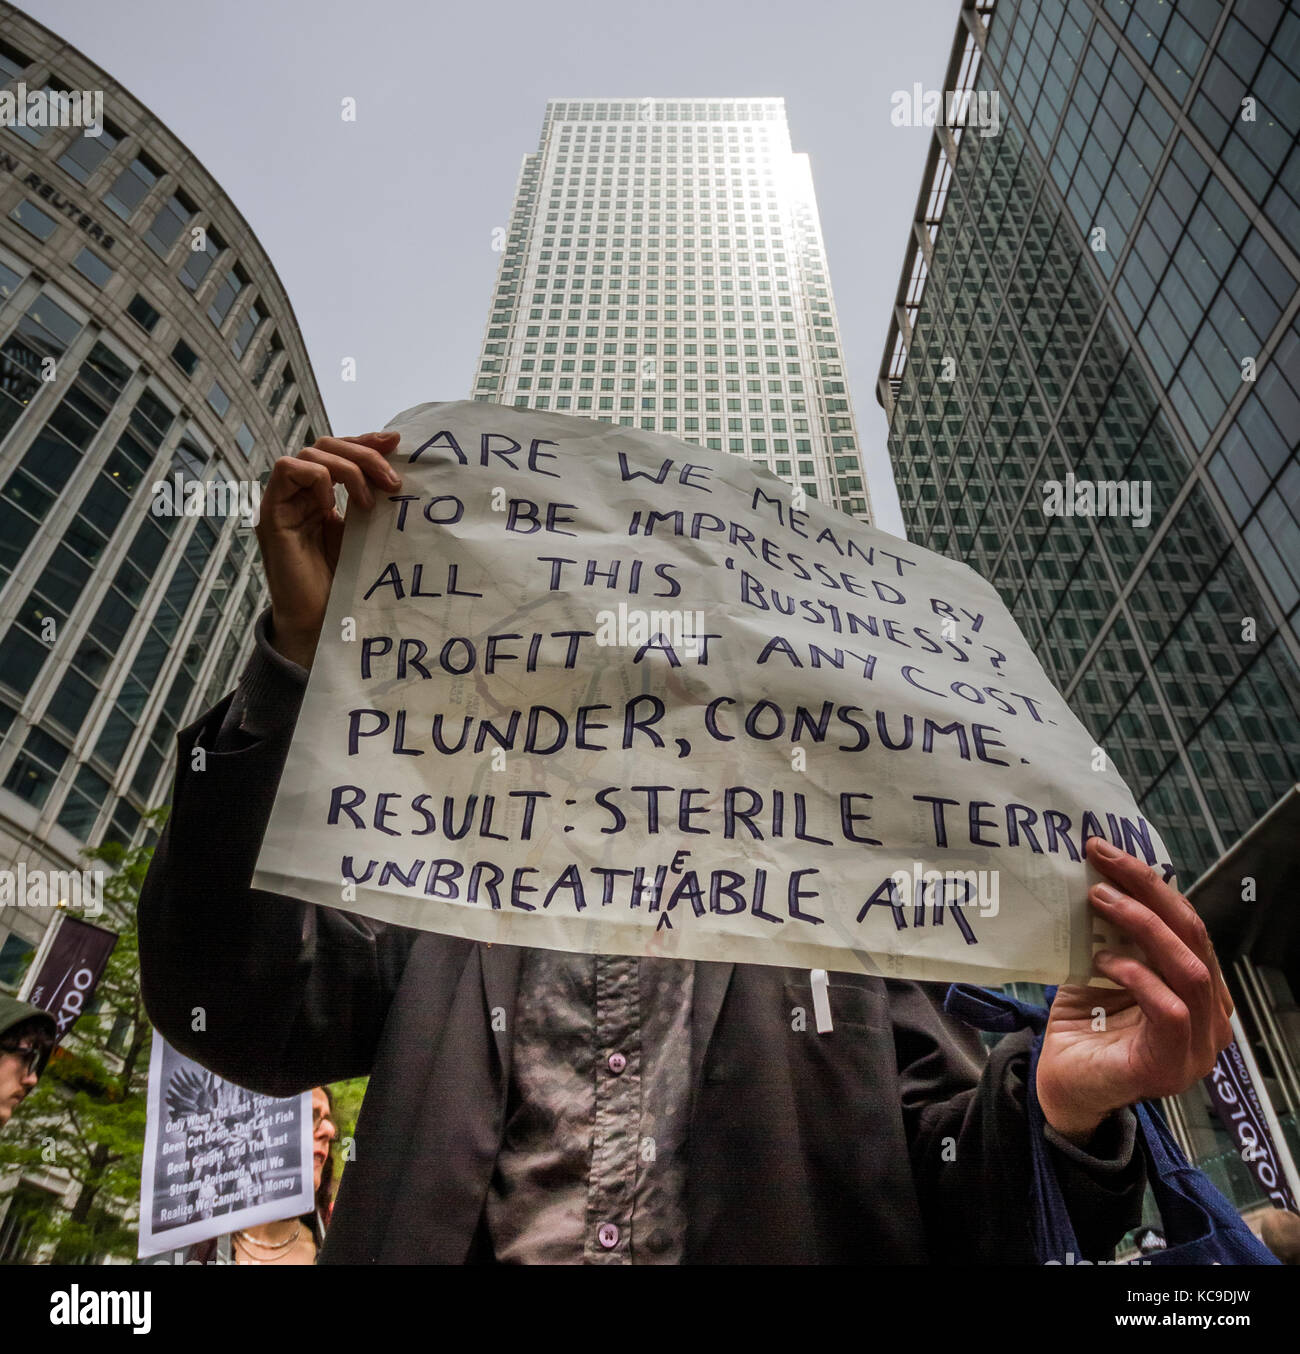 'They Owe Us' protest at Canary Wharf in east London sees climate activists join anti-capitalists to occupy one Stock Photo